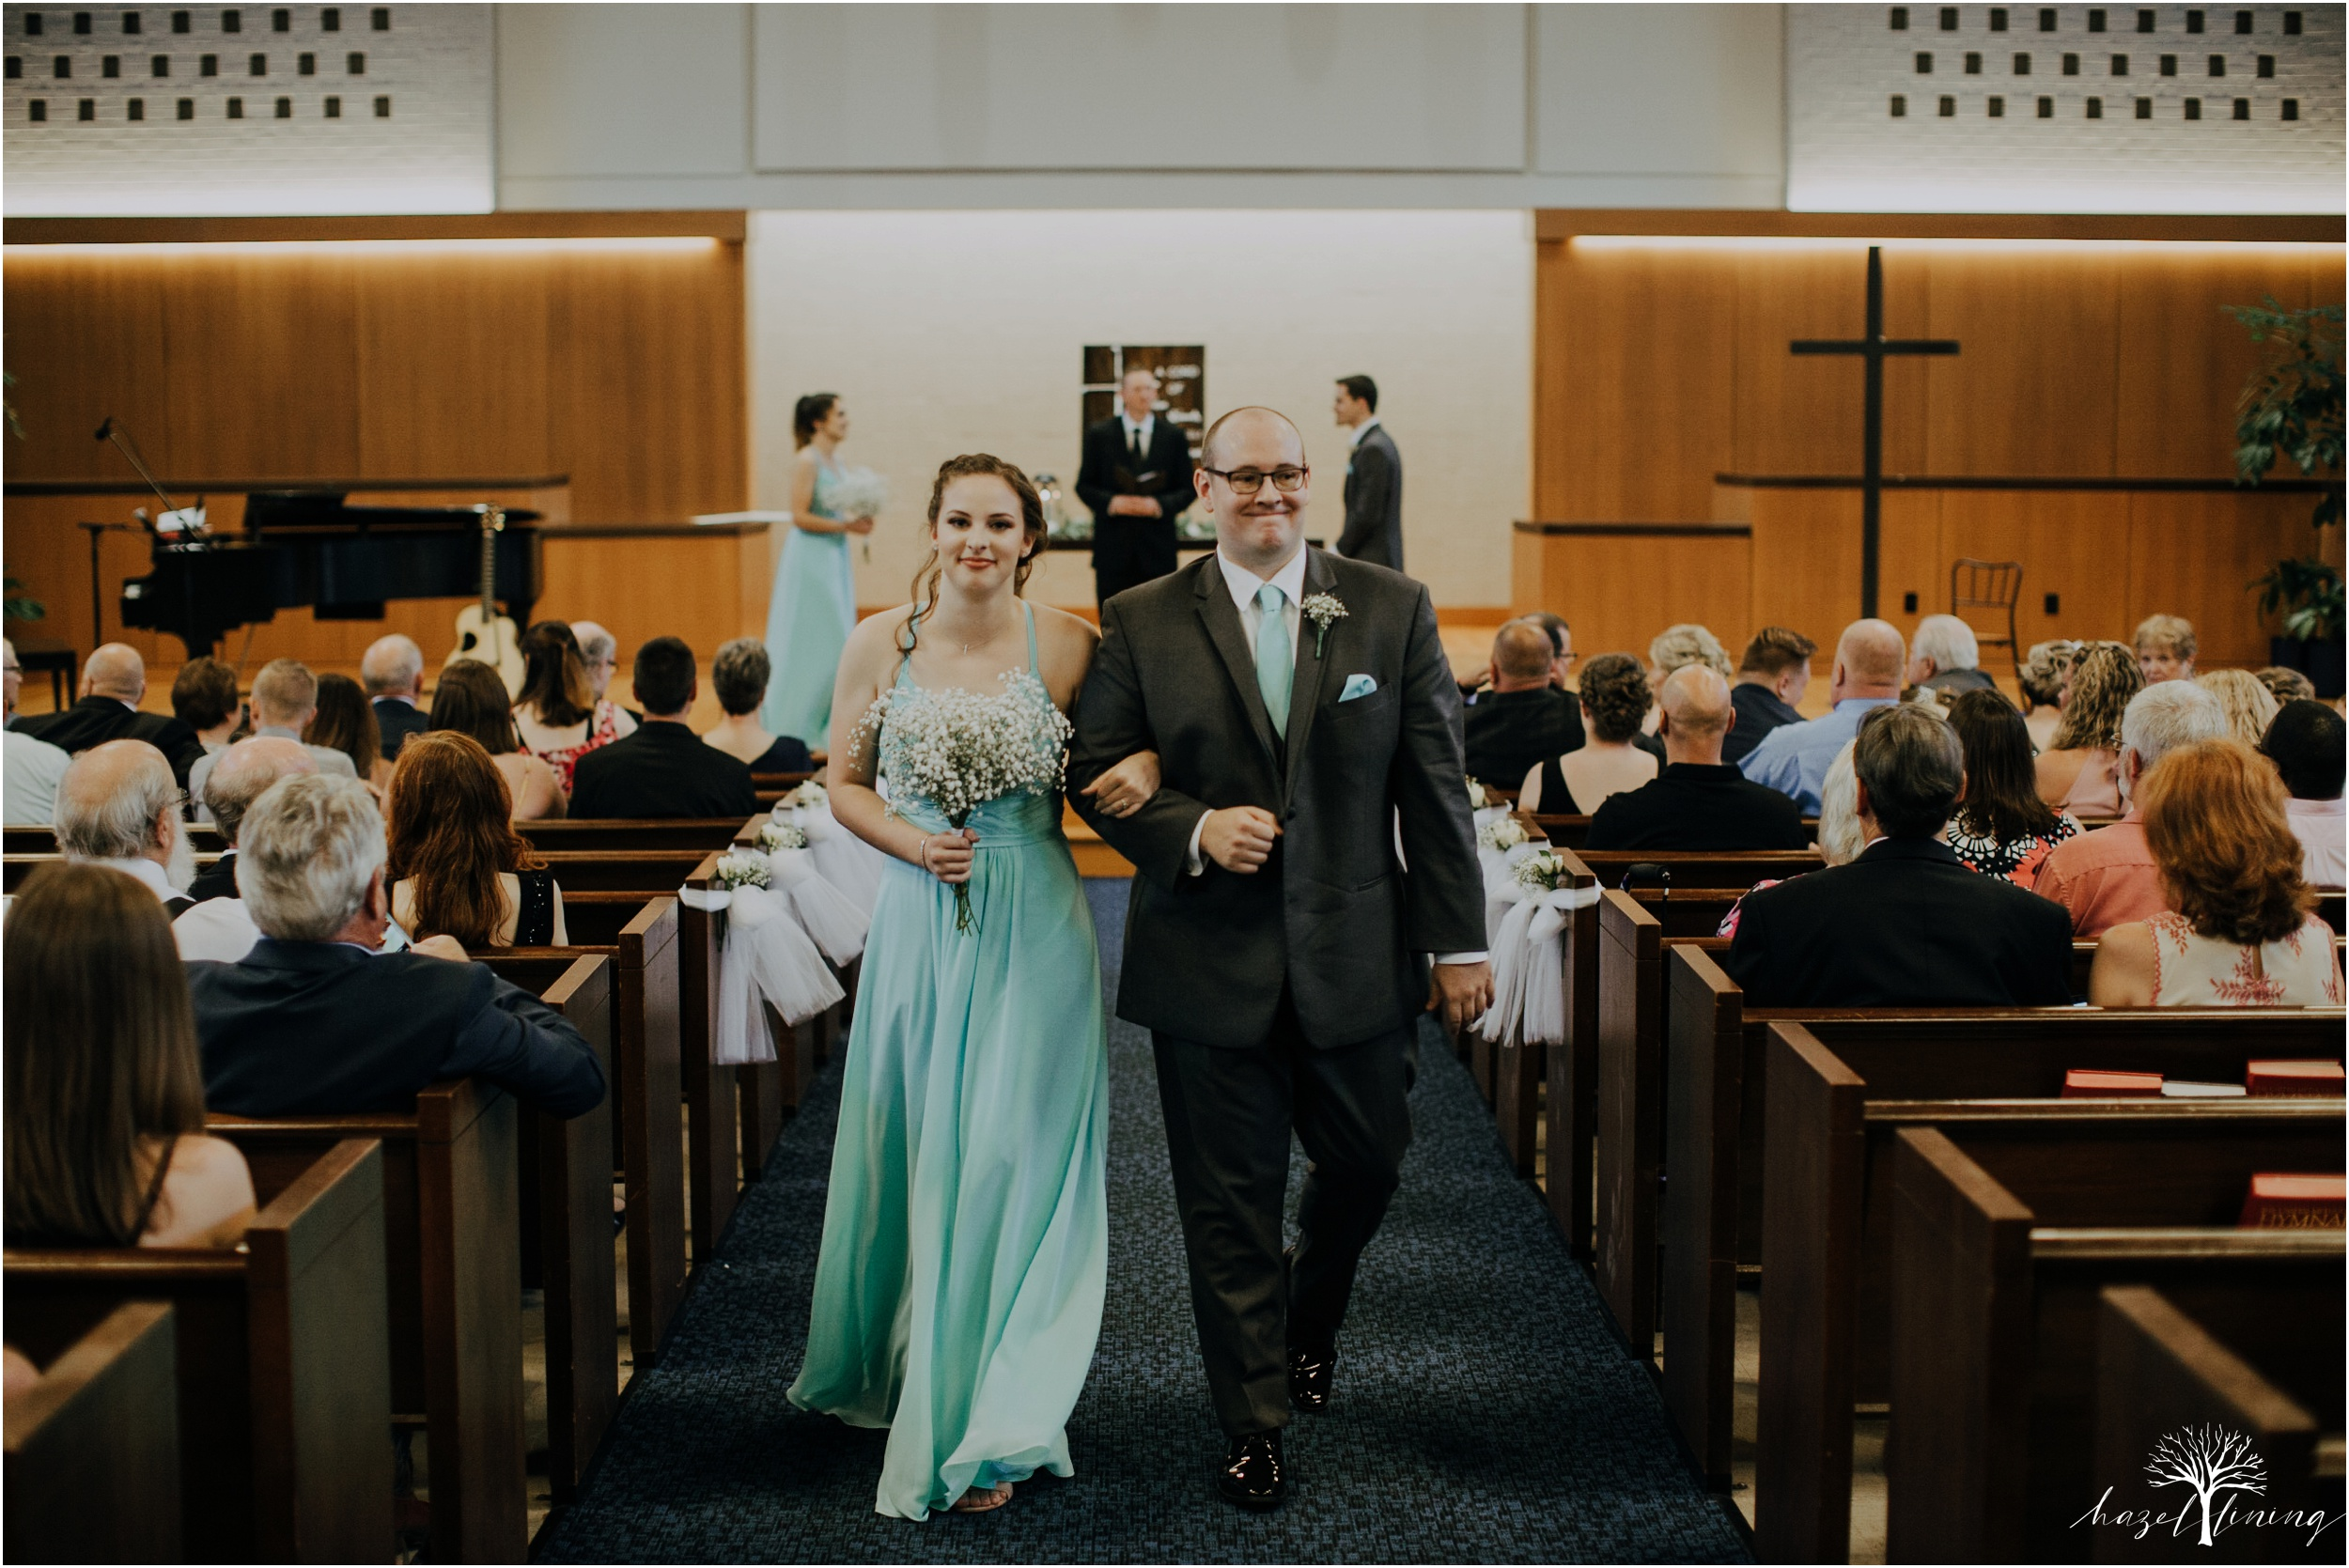 laura-zach-mccaskill-harmony-hall-lebanon-valley-college-summer-wedding-hazel-lining-photography-destination-elopement-wedding-engagement-photography_0075.jpg